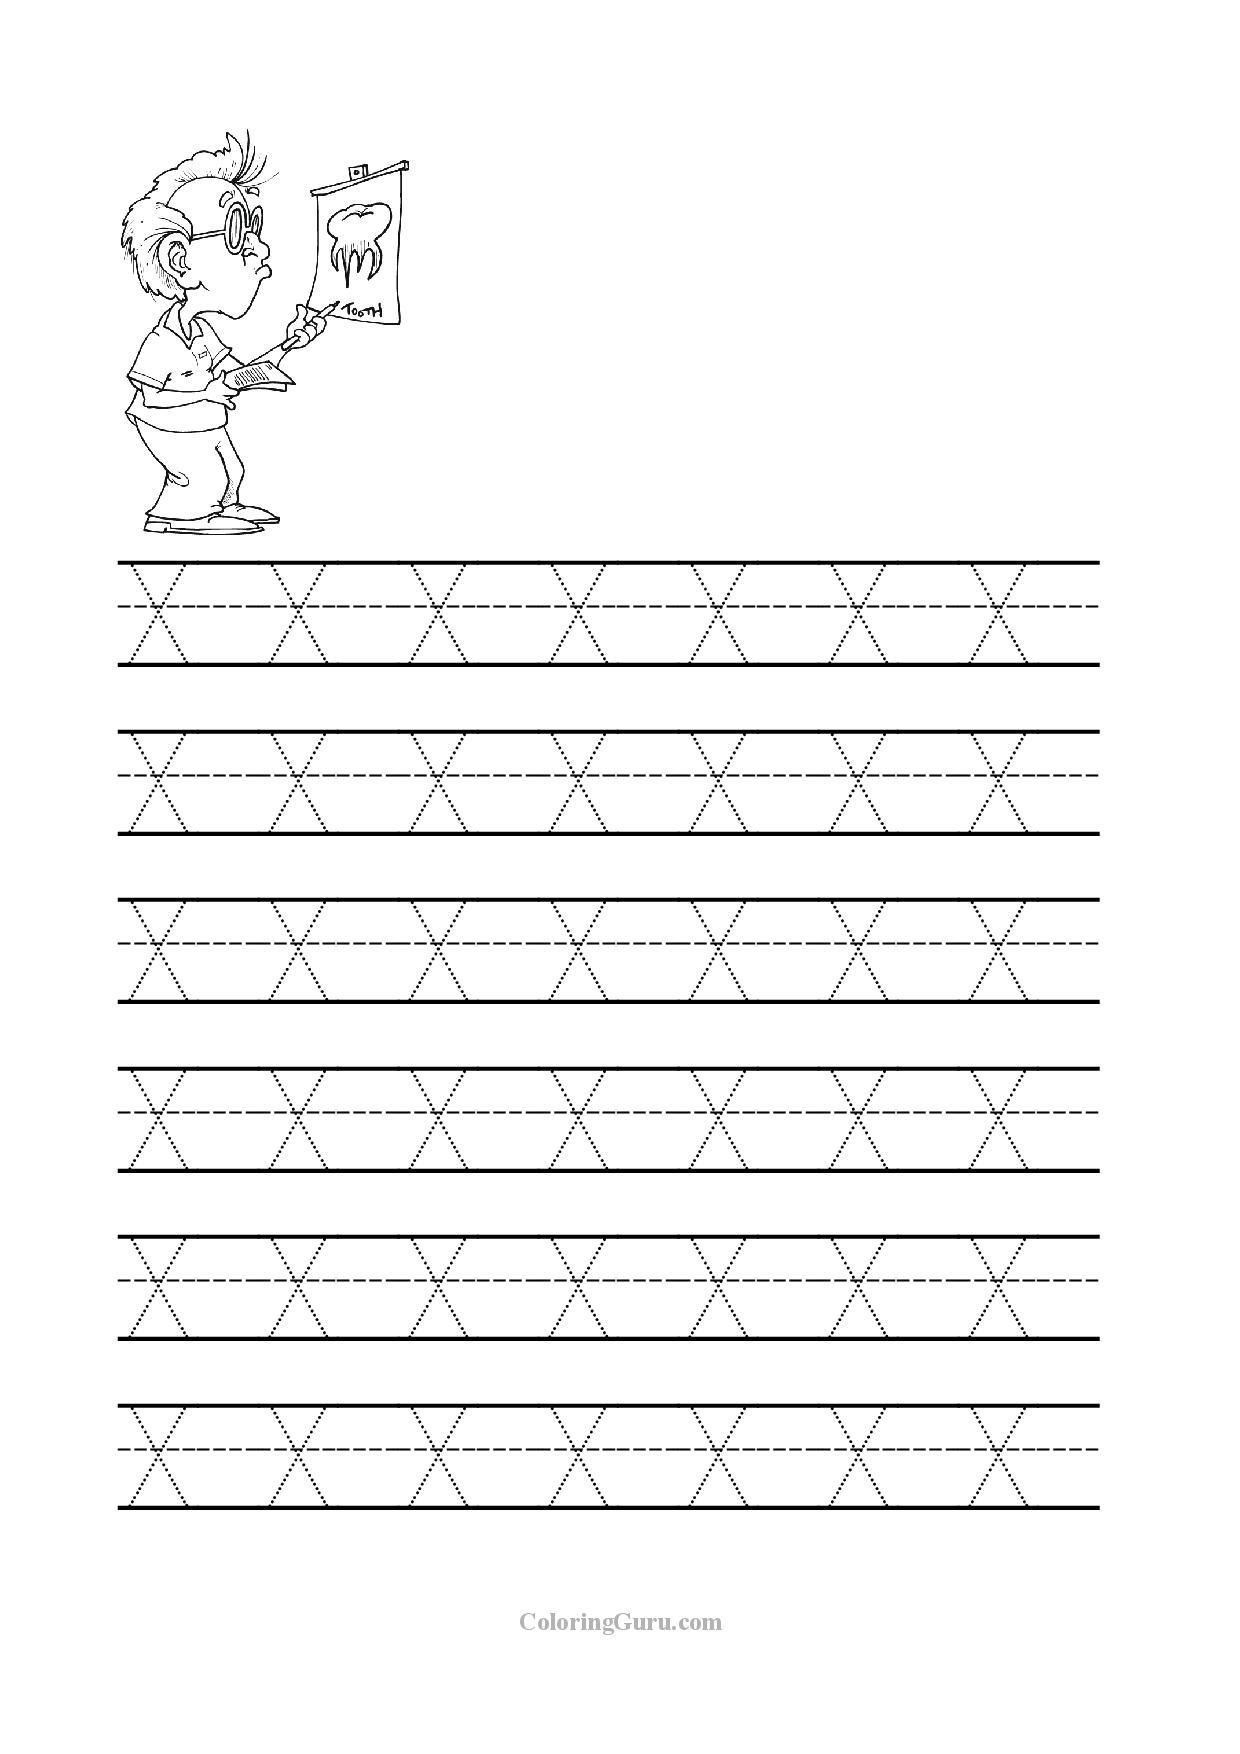 Free Printable Tracing Letter X Worksheets For Preschool | Abc 123 - Free Printable Name Tracing Worksheets